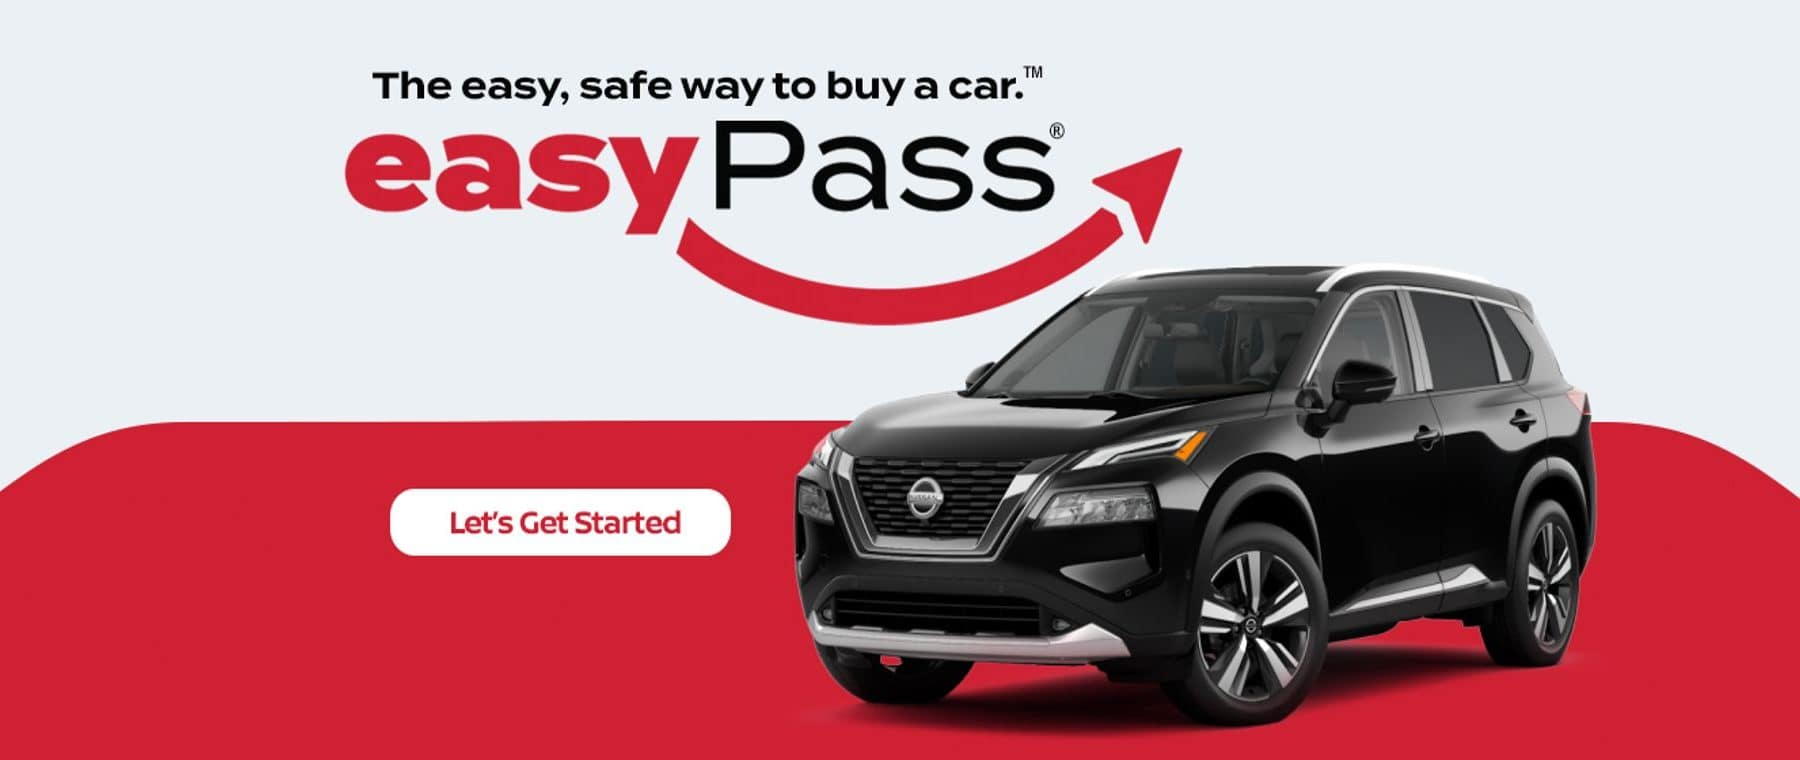 Rosen Easy Pass The Safe and Easy Way To Buy A Car